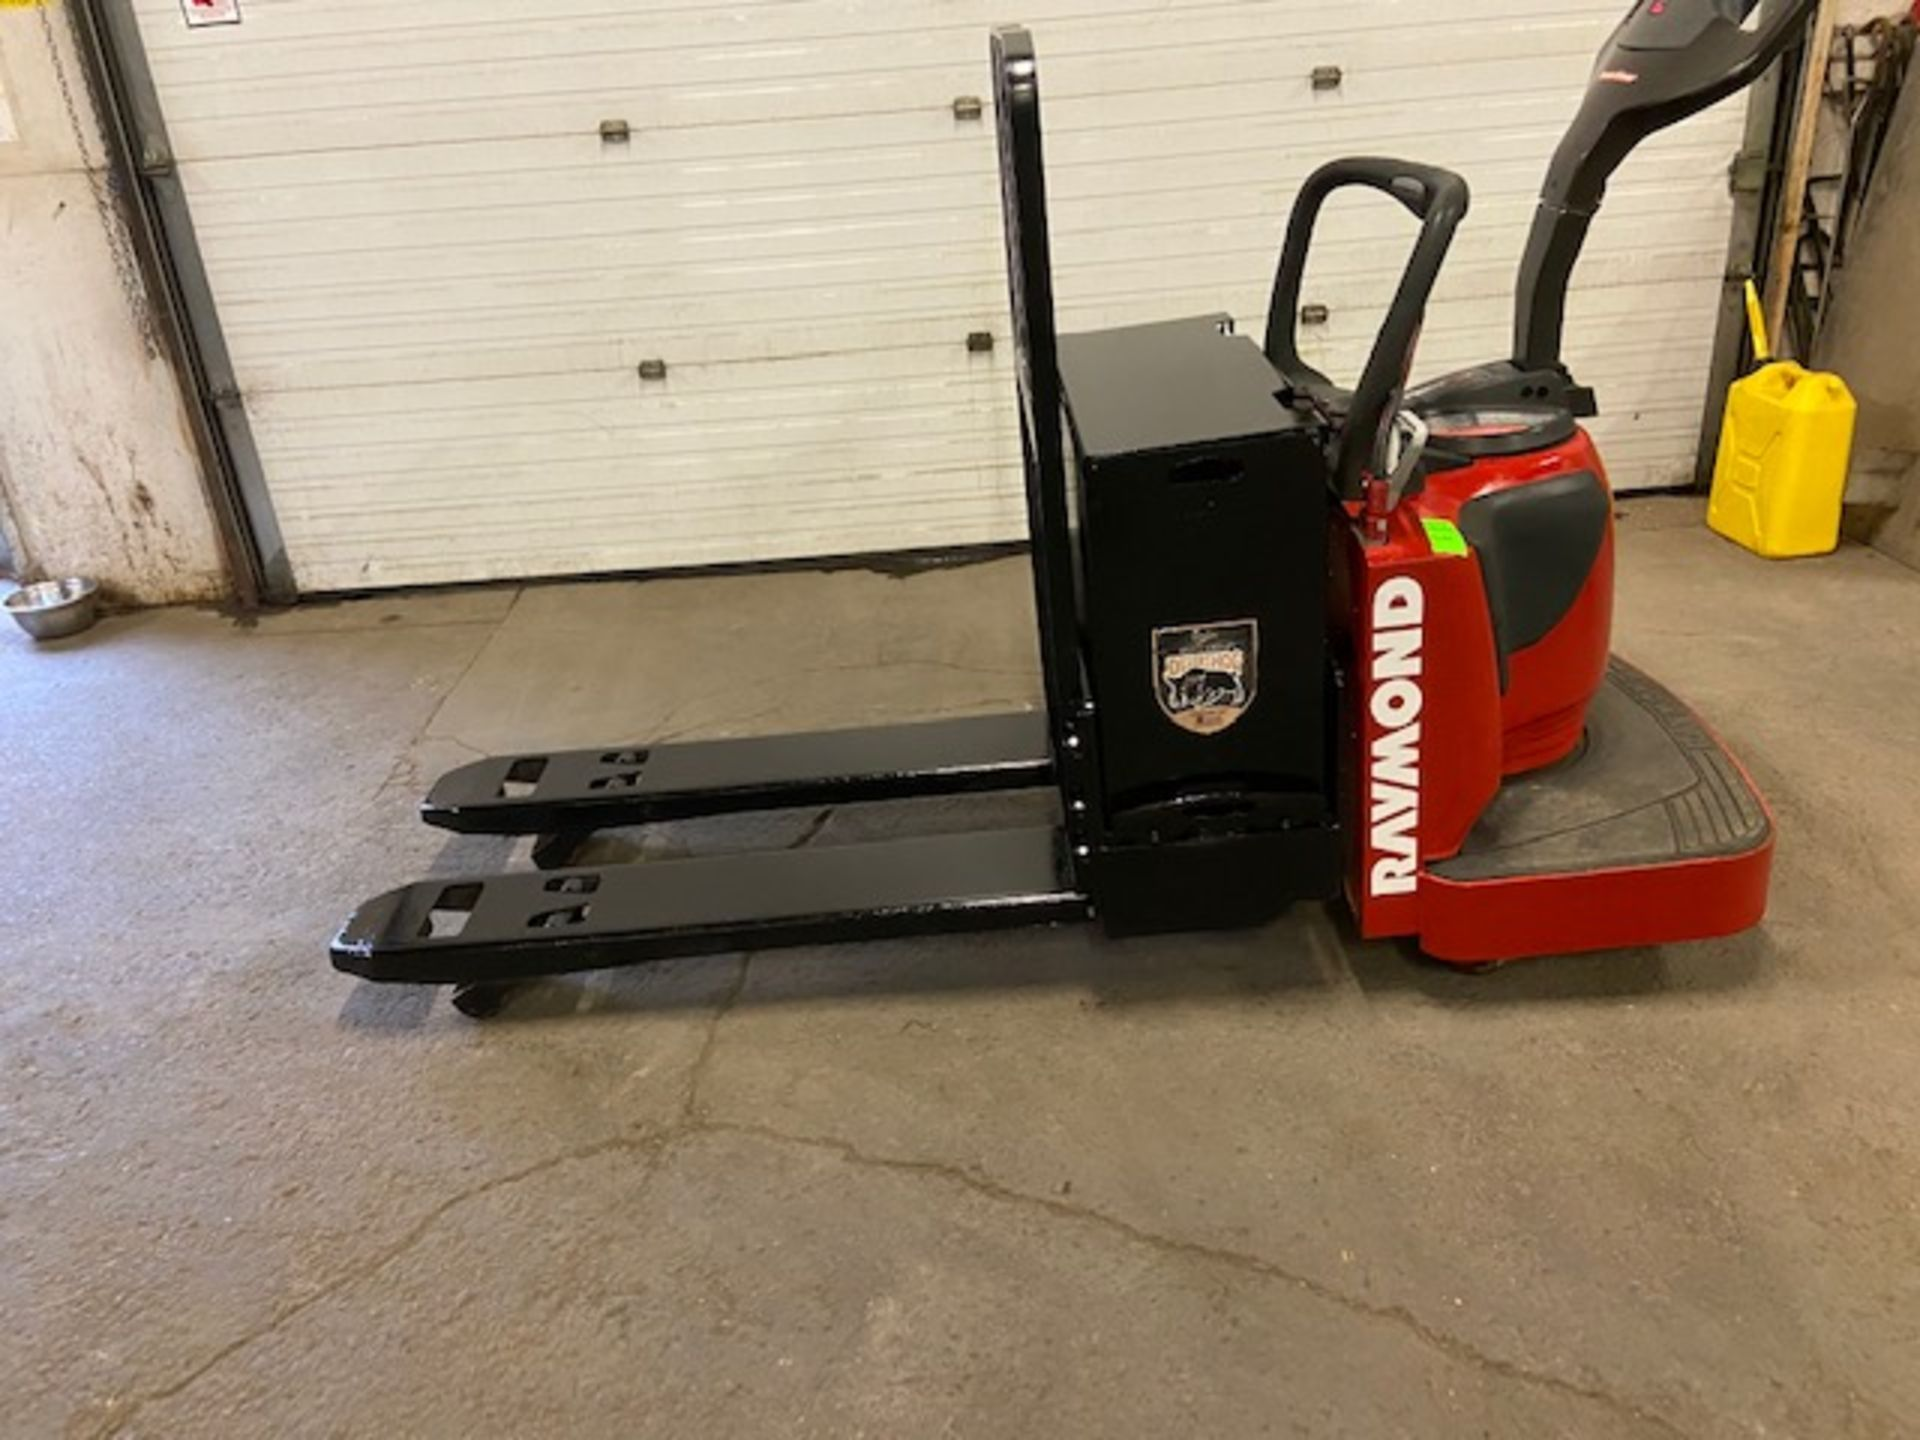 2012 Raymond Electric Ride on Powered Pallet Cart Lift with POWER STEERING 6000lbs capacity 4'